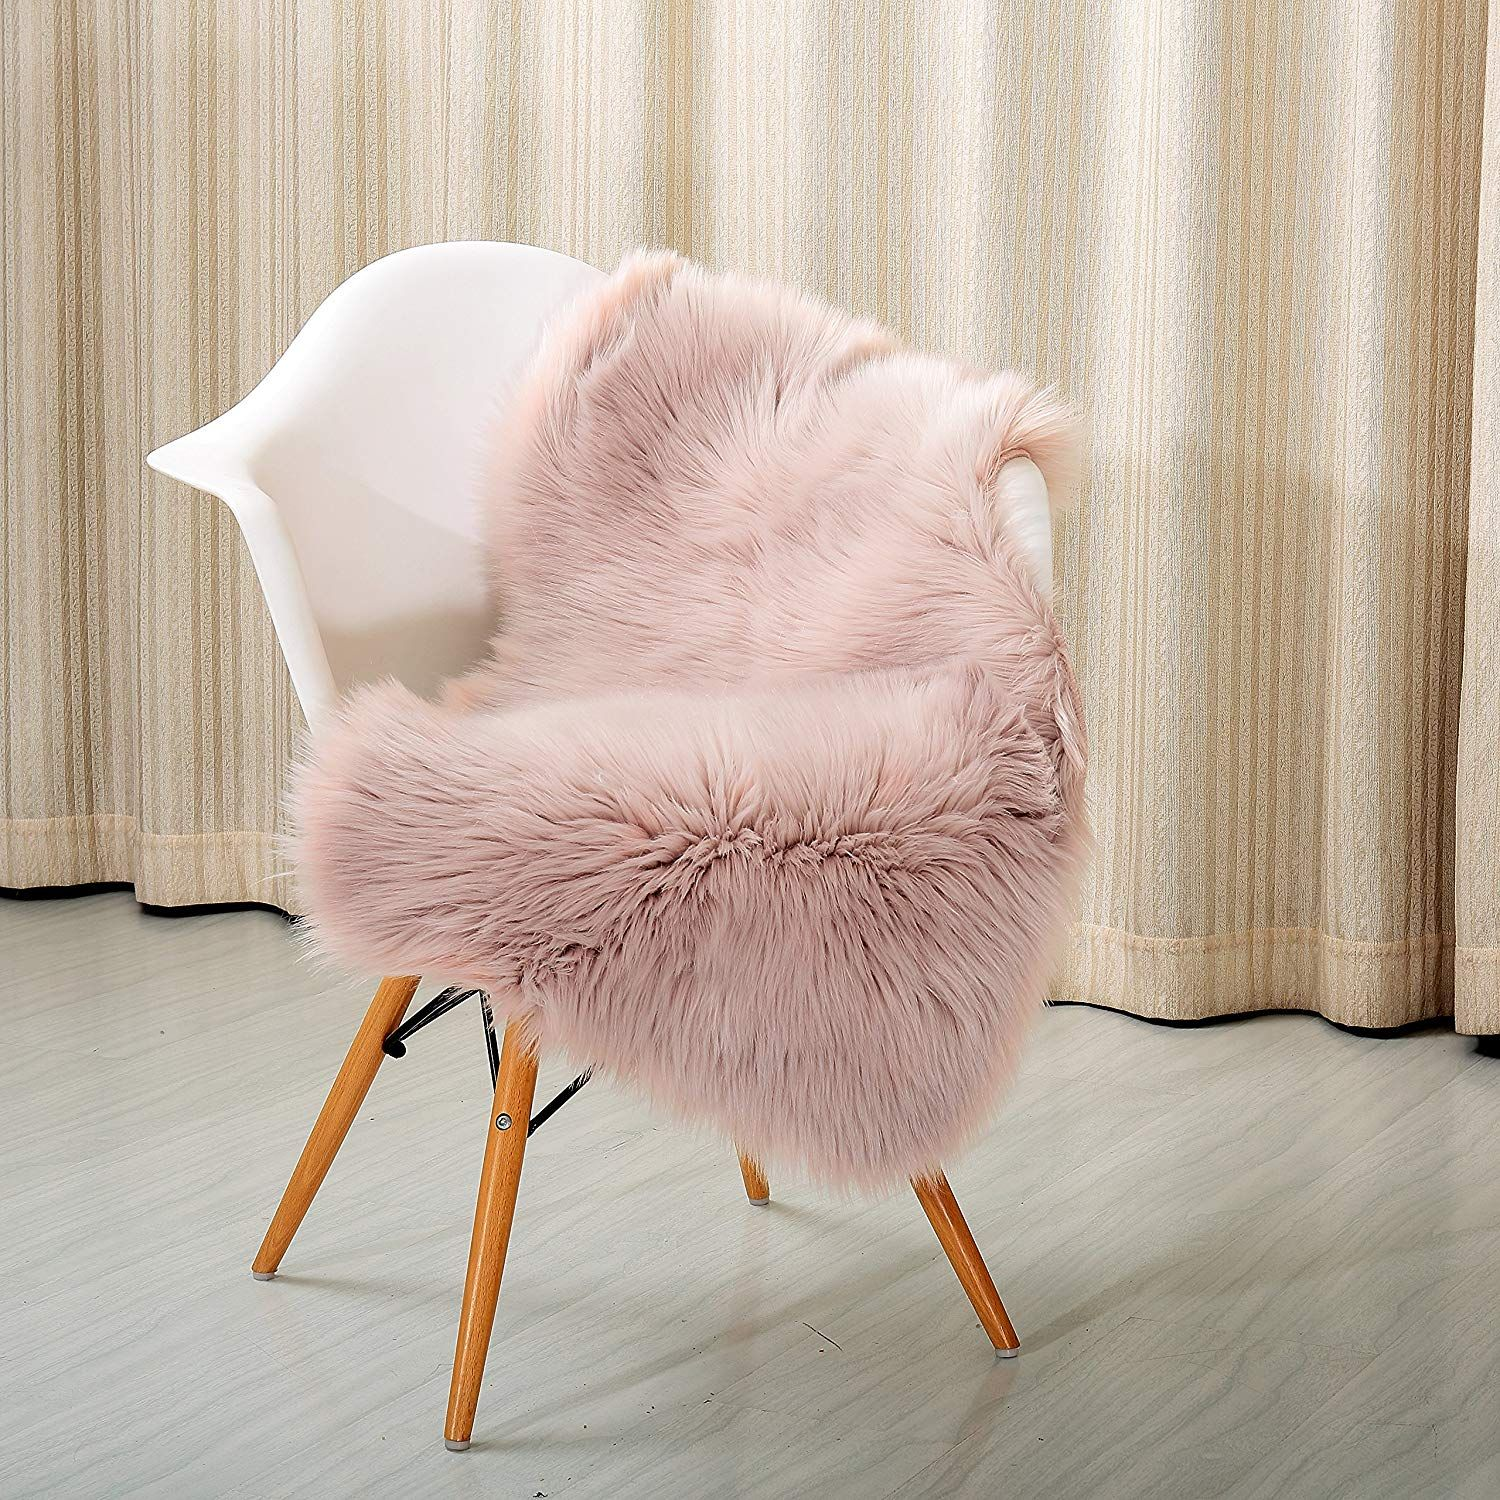 High Pile Super Soft Faux Sheepskin Rug Chair Cover Sofa Cover Multiple Usage Area Rug S Seat Covers For Chairs Dining Chair Seat Covers Faux Sheepskin Rug